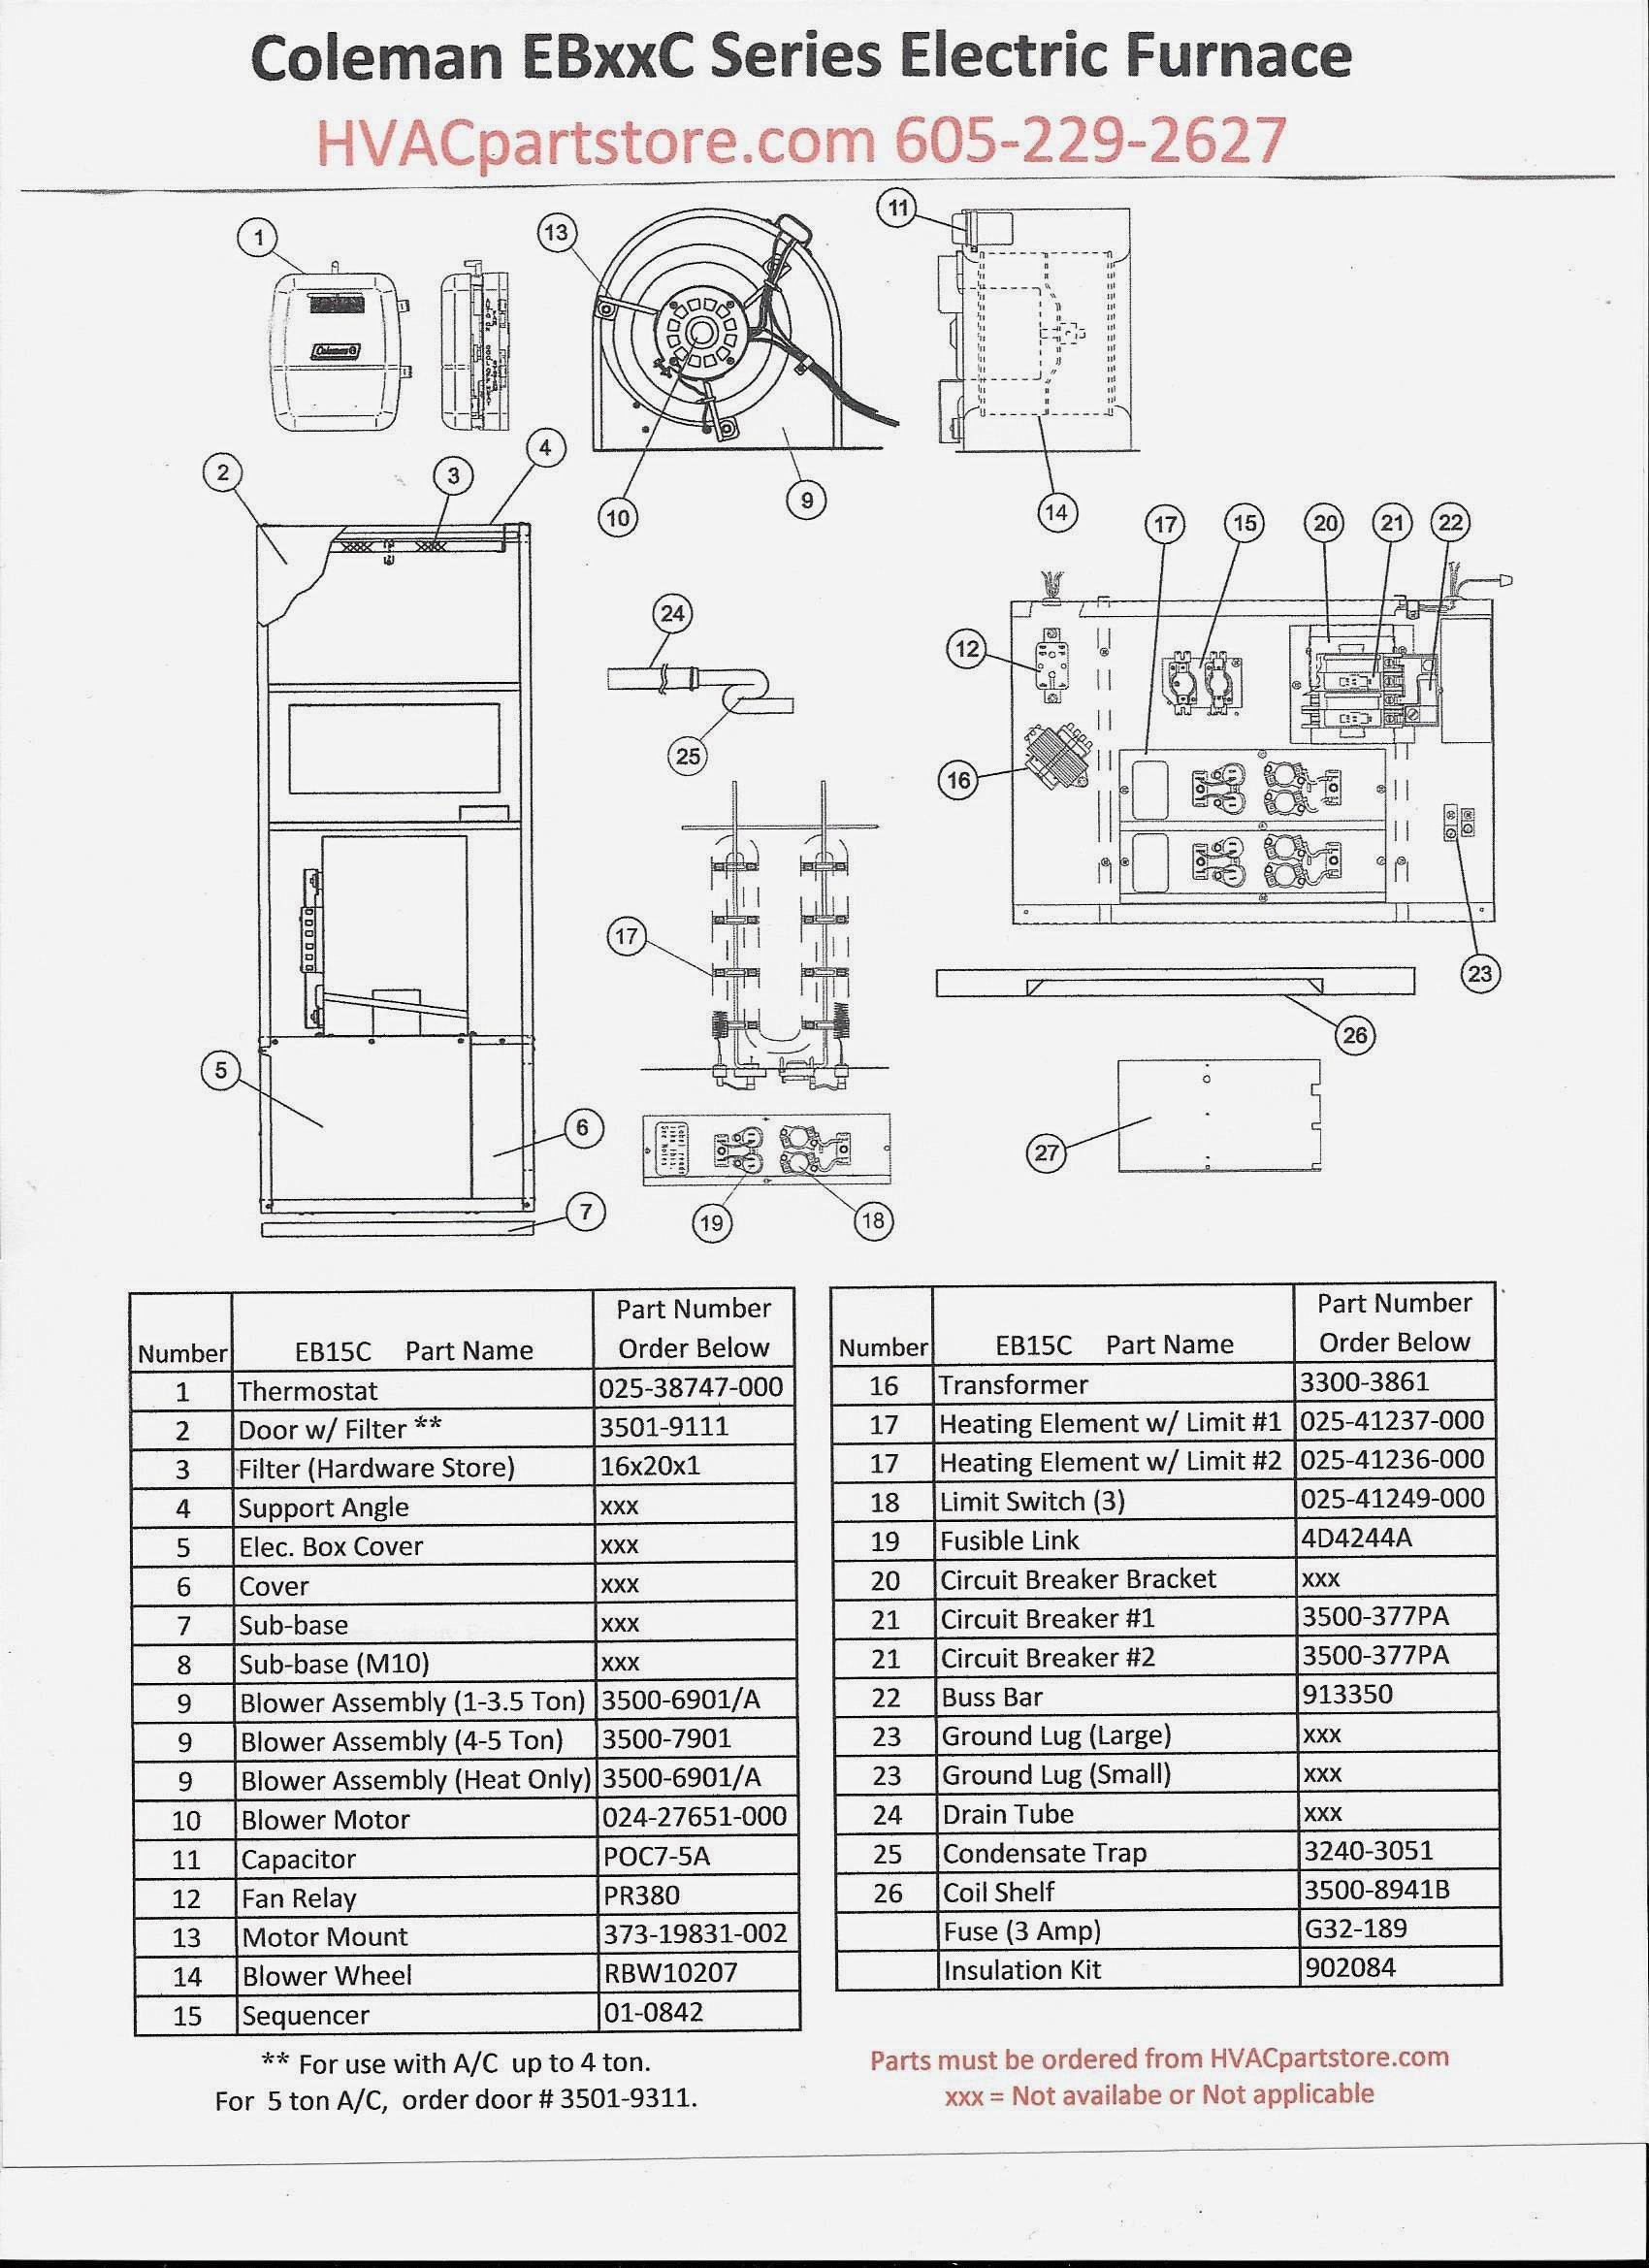 Trane Heat Pump Wiring Diagram : Diagram Trane Heat Pump